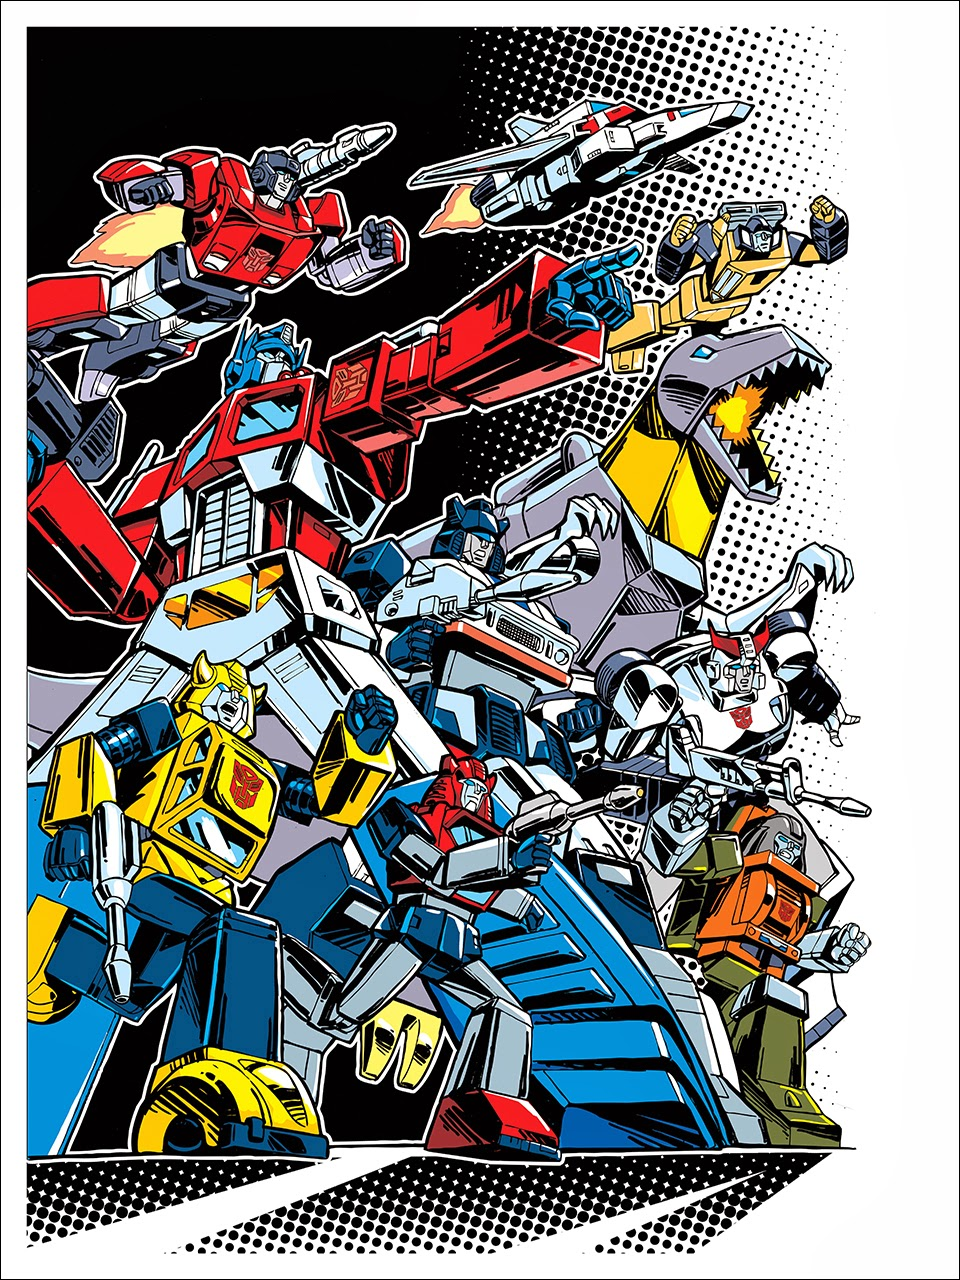 """Autobots"" Transformers 30th Anniversary Giclee Print by Guido Guidi"